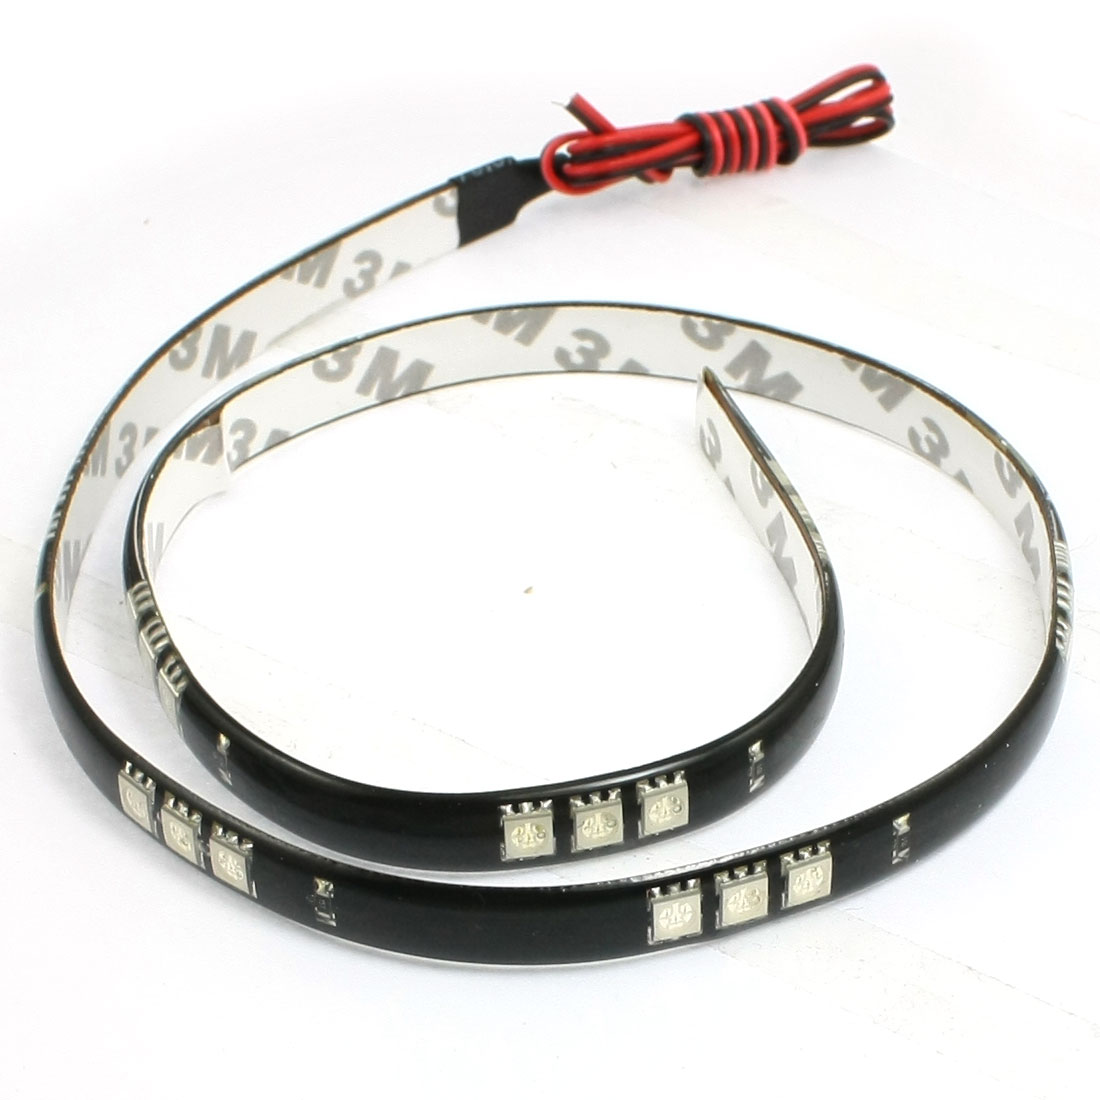 Auto Car Green 30 5051 SMD LED Light Flexible Lamp Strip 60cm